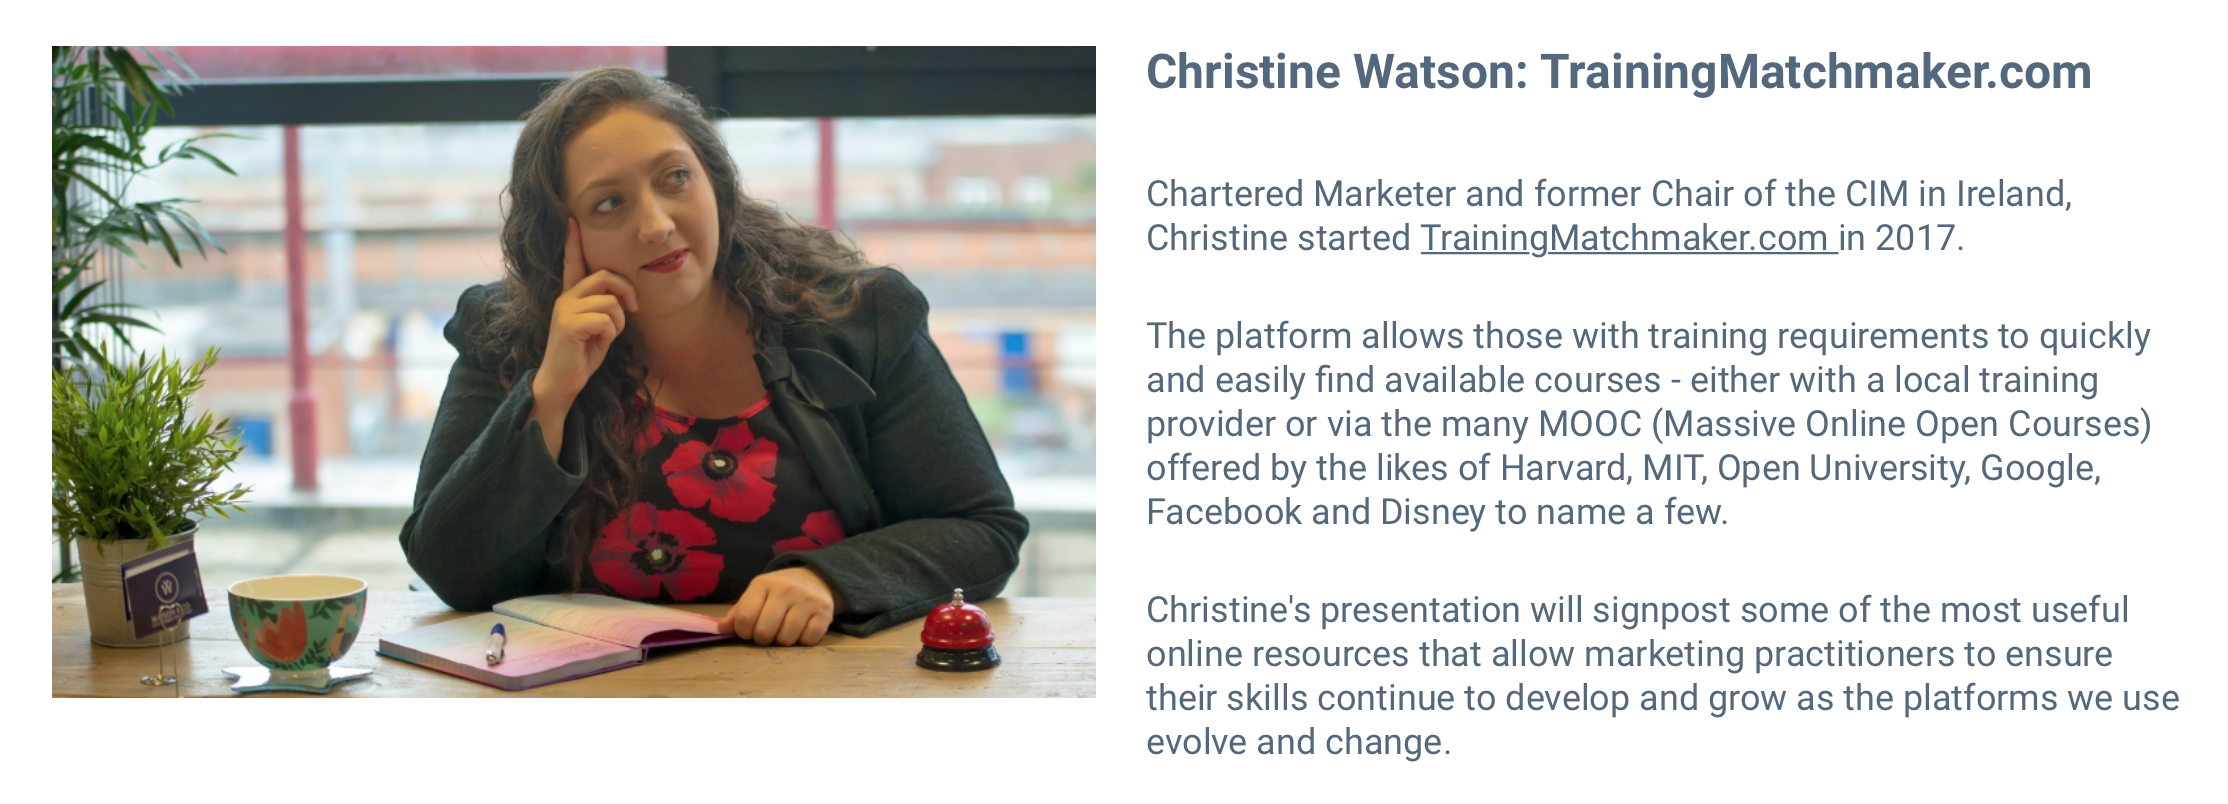 Hear about the Future of Learning from Chartered Marketer Christine Watson at the Future of Marketing Part 3 Conference in Belfast